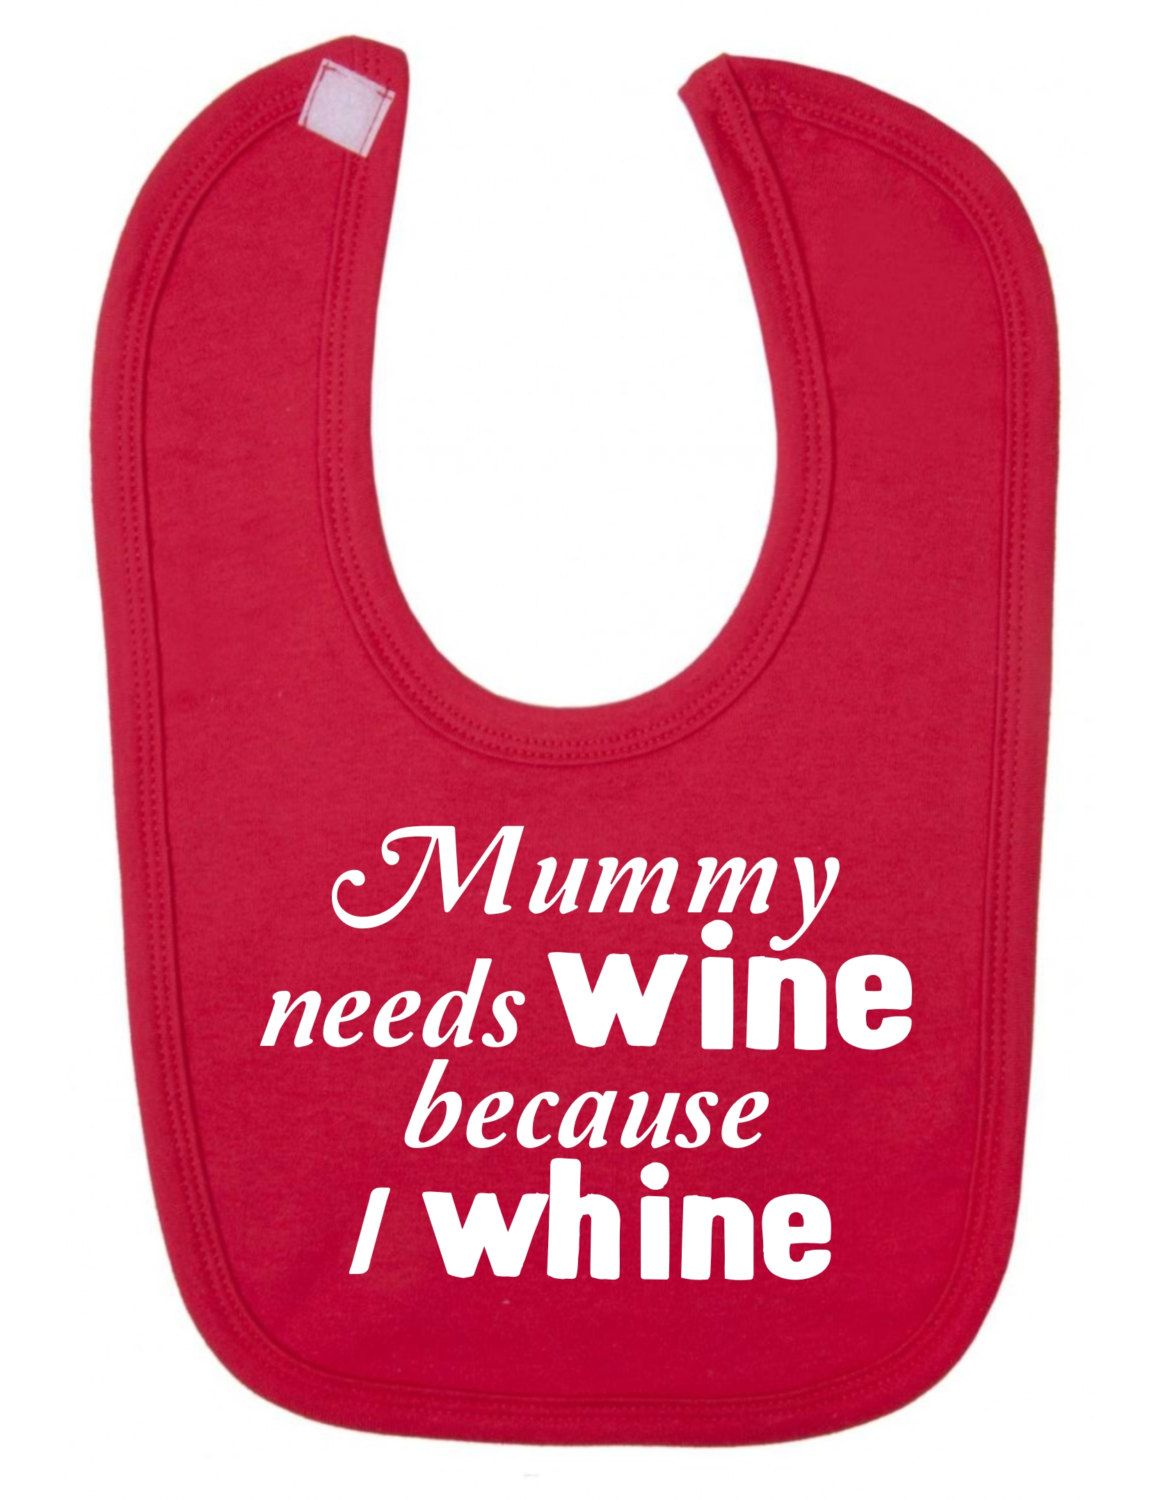 Pin By Monique On Adorable Baby Stuff Need Wine Baby Bibs Wine